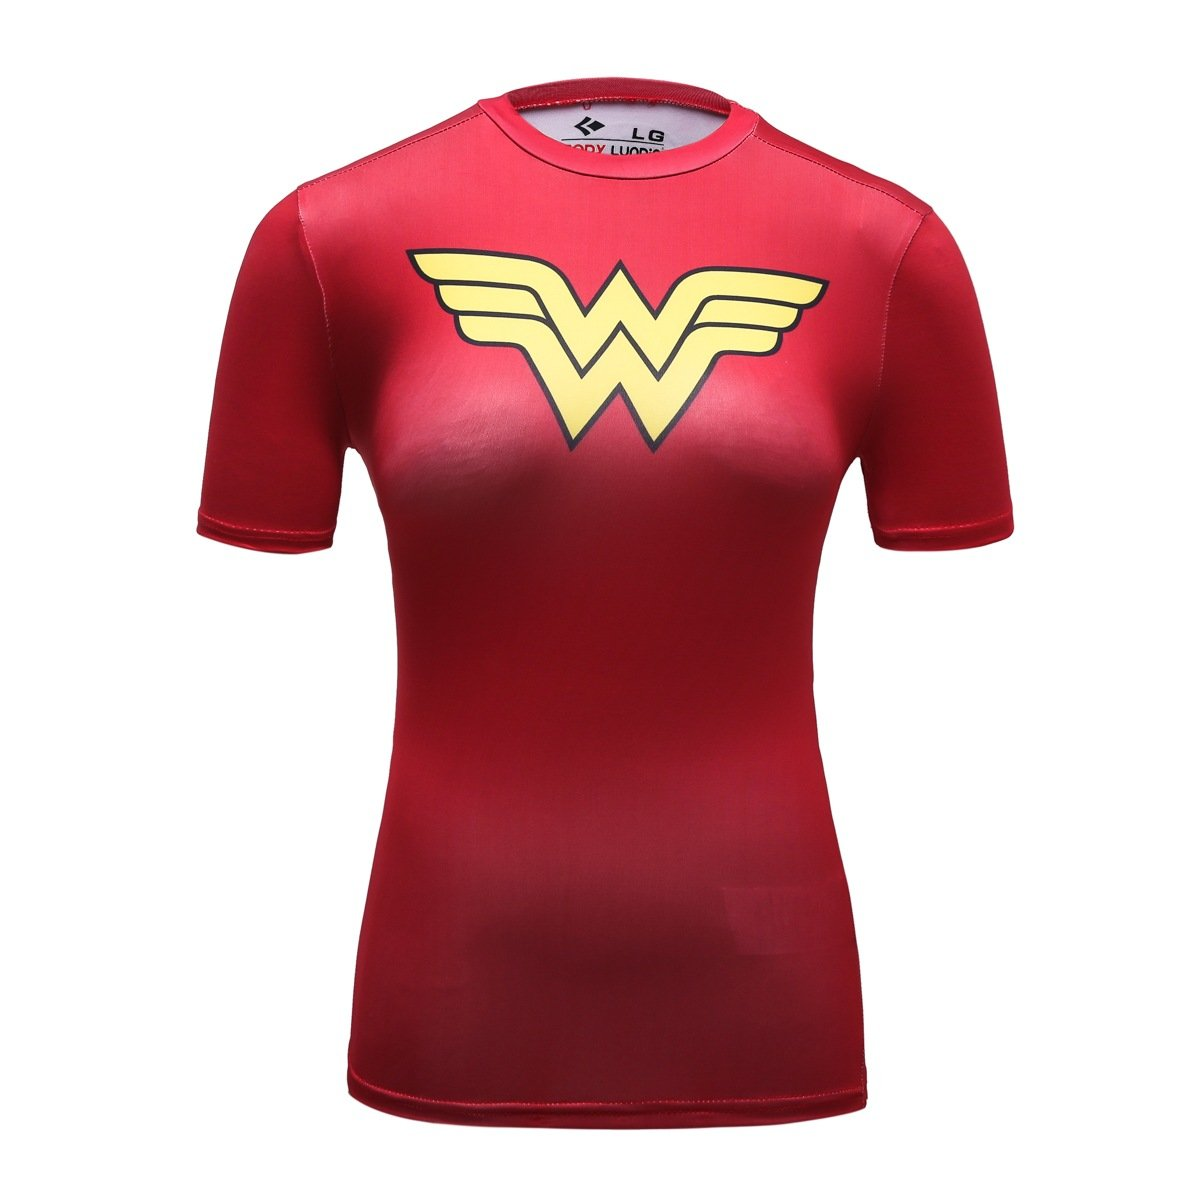 Red Plume Women's Compression Fitness Sport T-Shirt,Wonder Woman Short-Sleeve (XXL, Red)